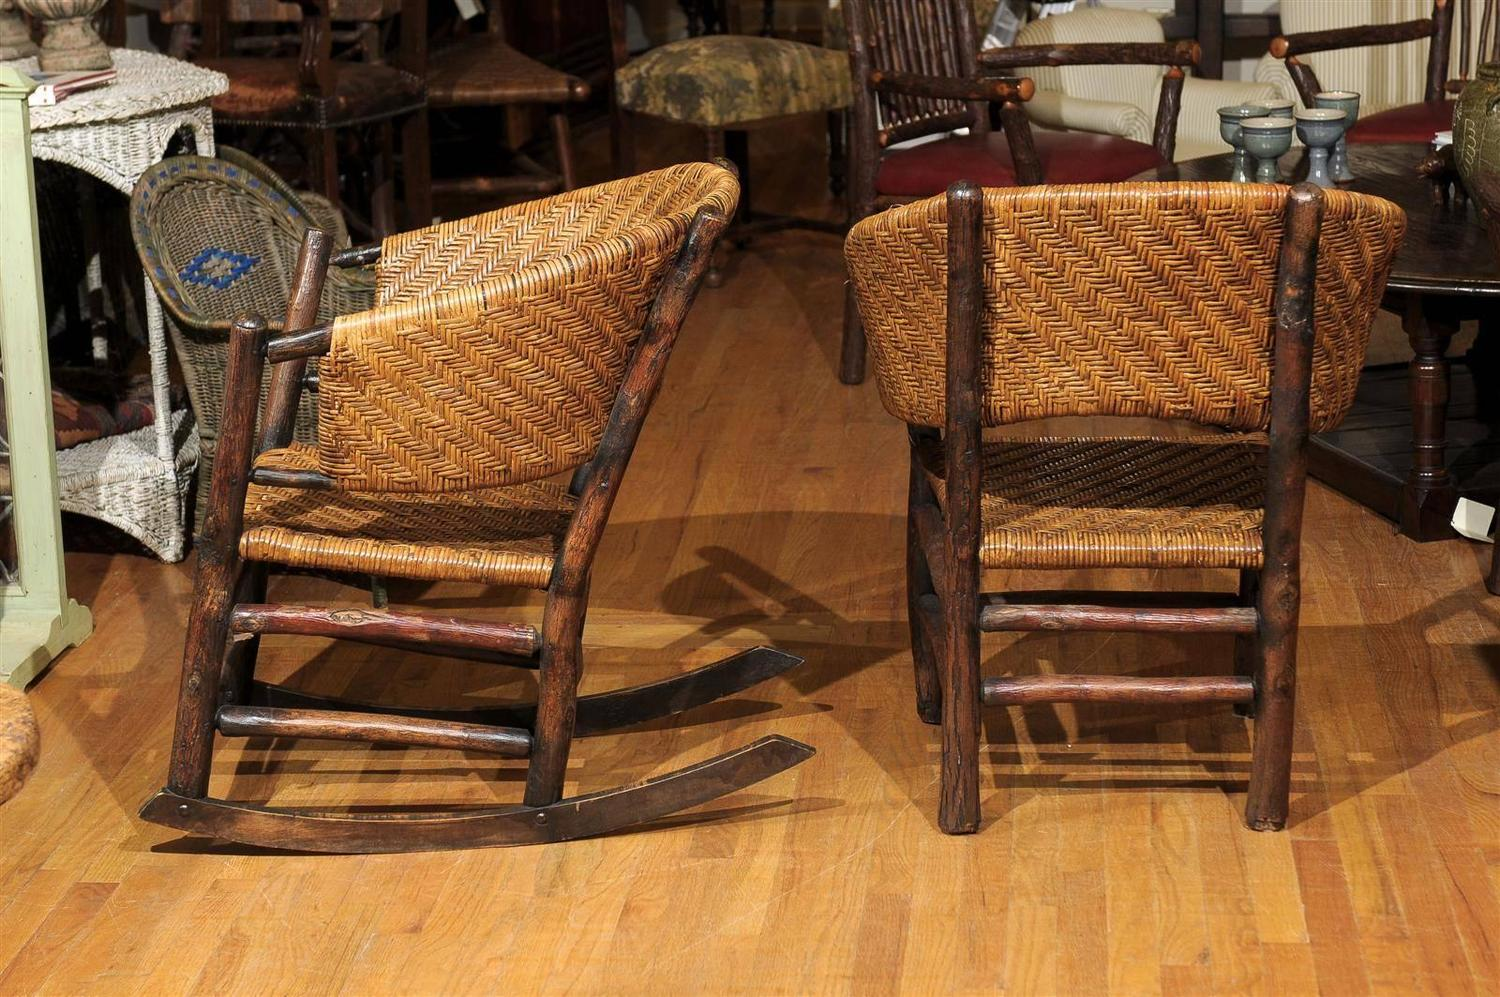 Indiana hickory furniture company rocker and chair for for Furniture indiana pa